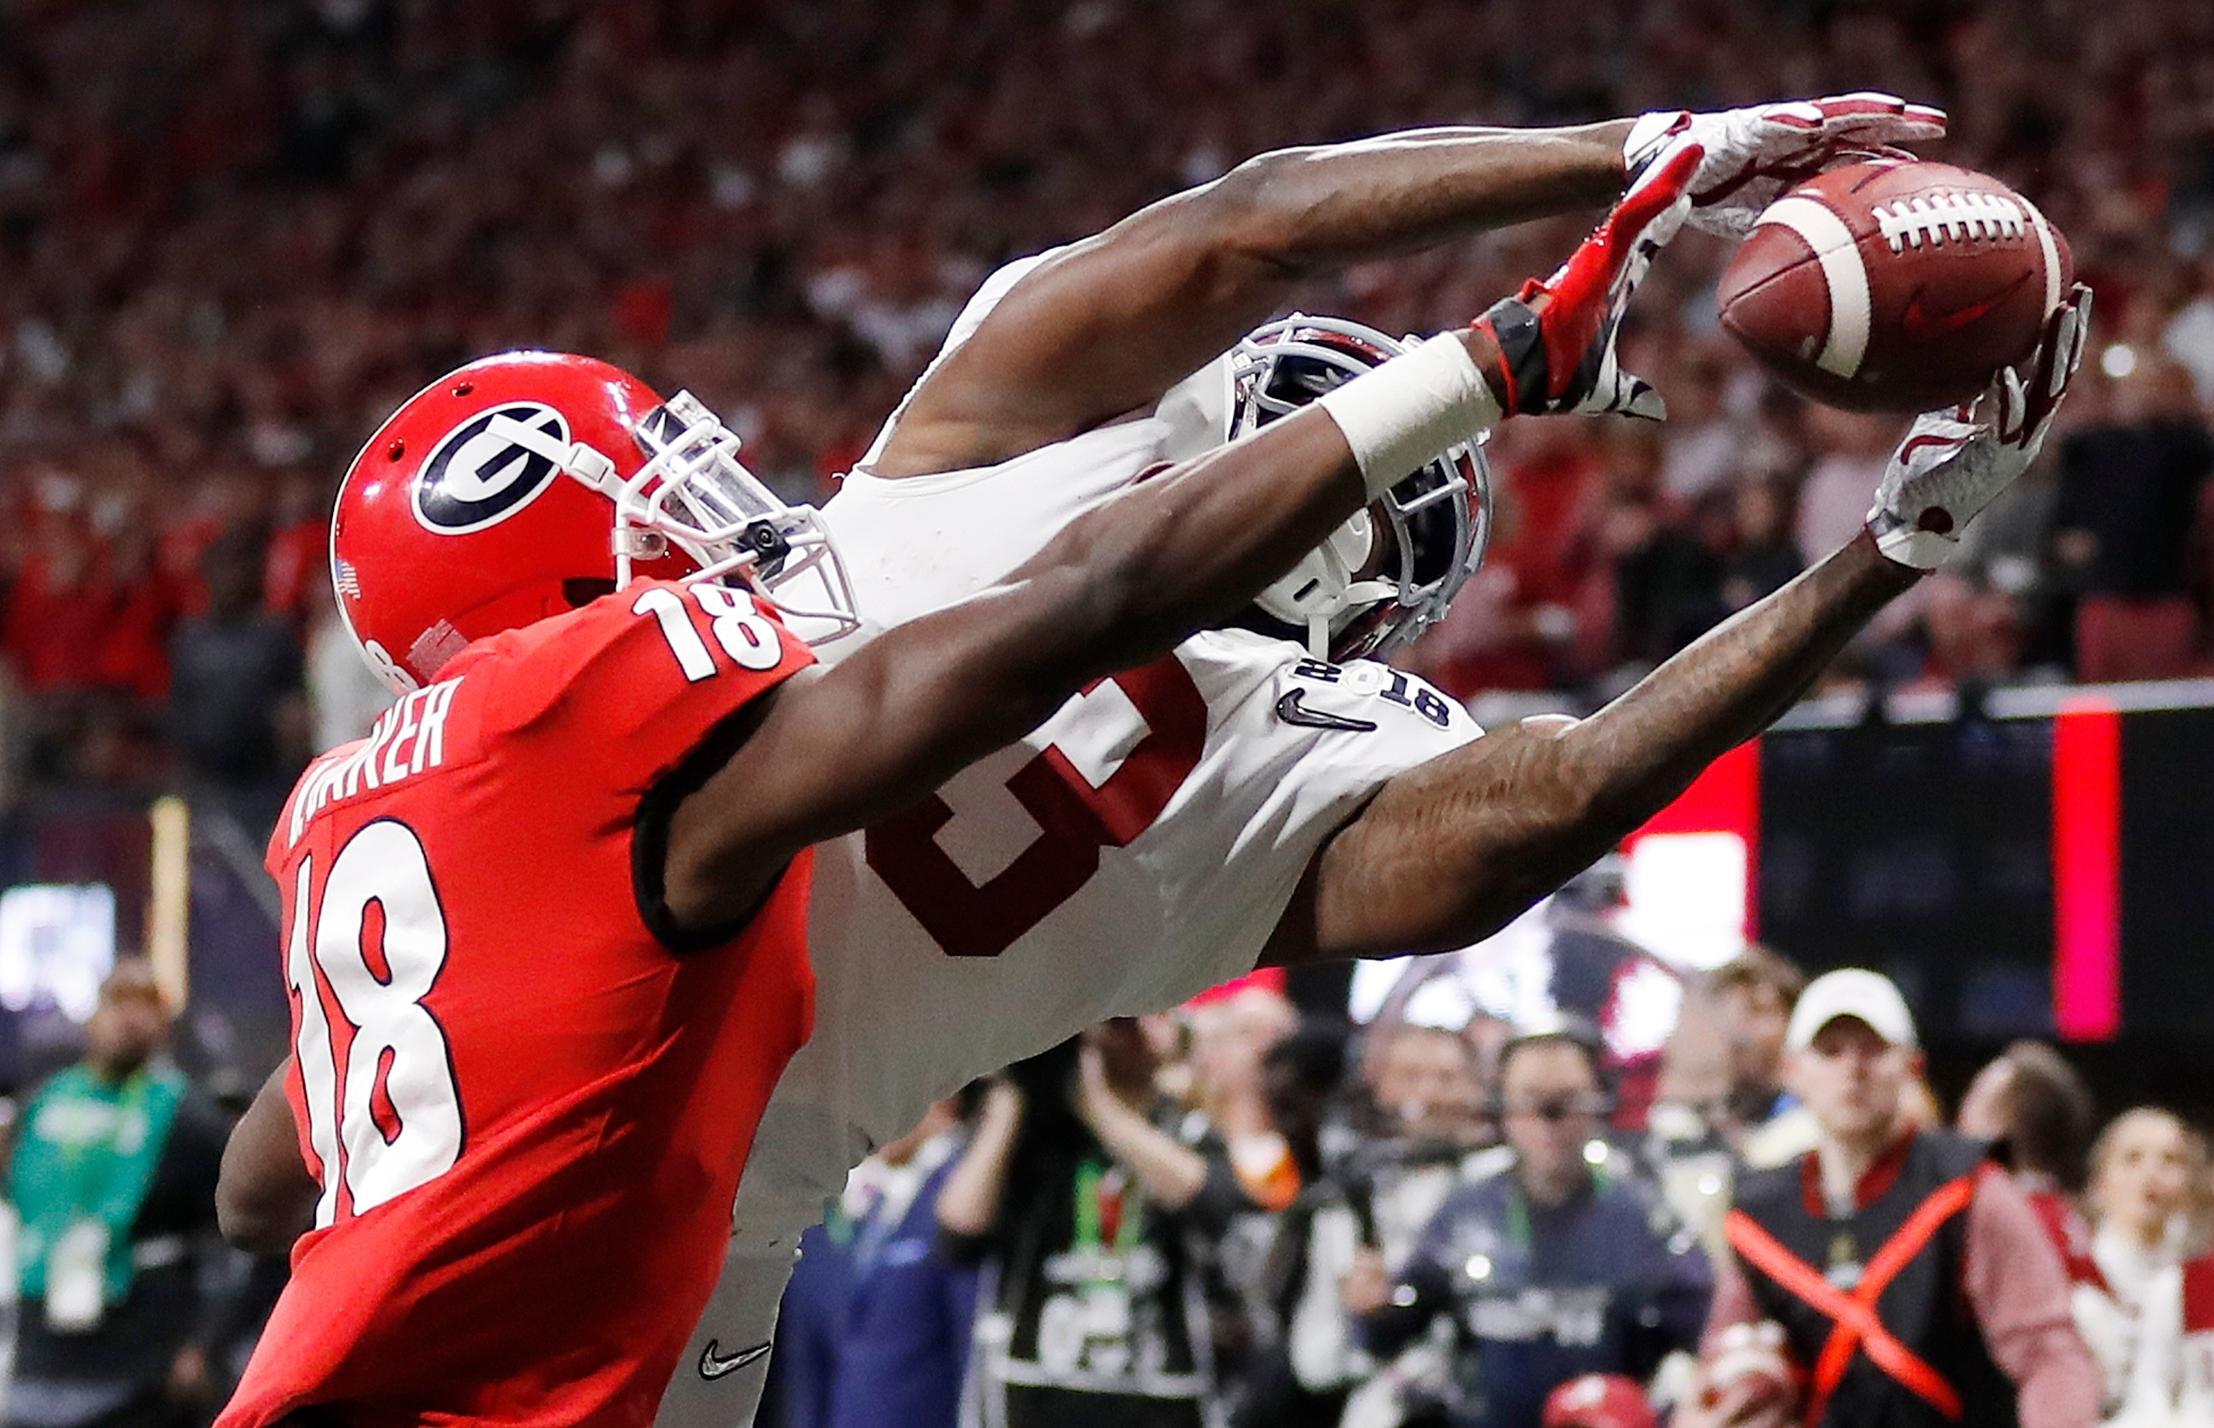 Georgia's Deandre Baker knocks the ball away from Alabama's Calvin Ridley during the second half of the NCAA college football playoff championship game Monday, Jan. 8, 2018, in Atlanta. (AP Photo/David Goldman)